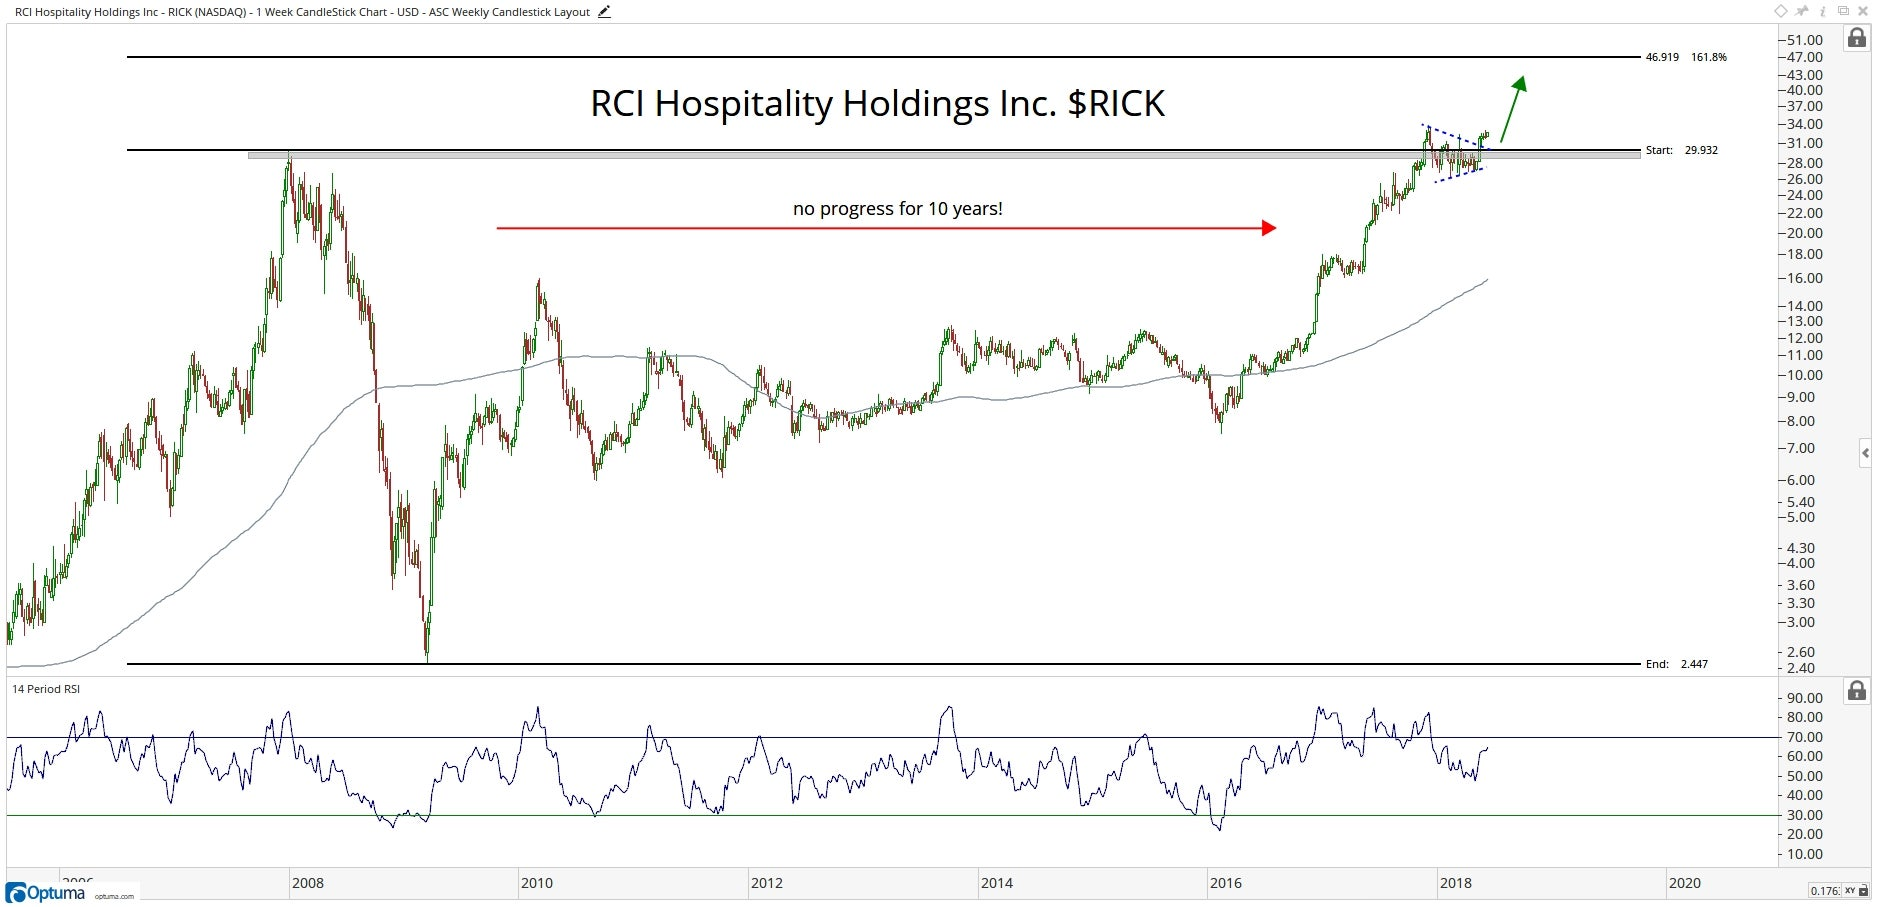 Technical chart showing the performance of RCI Hospitality Holdings, Inc. (RICK)